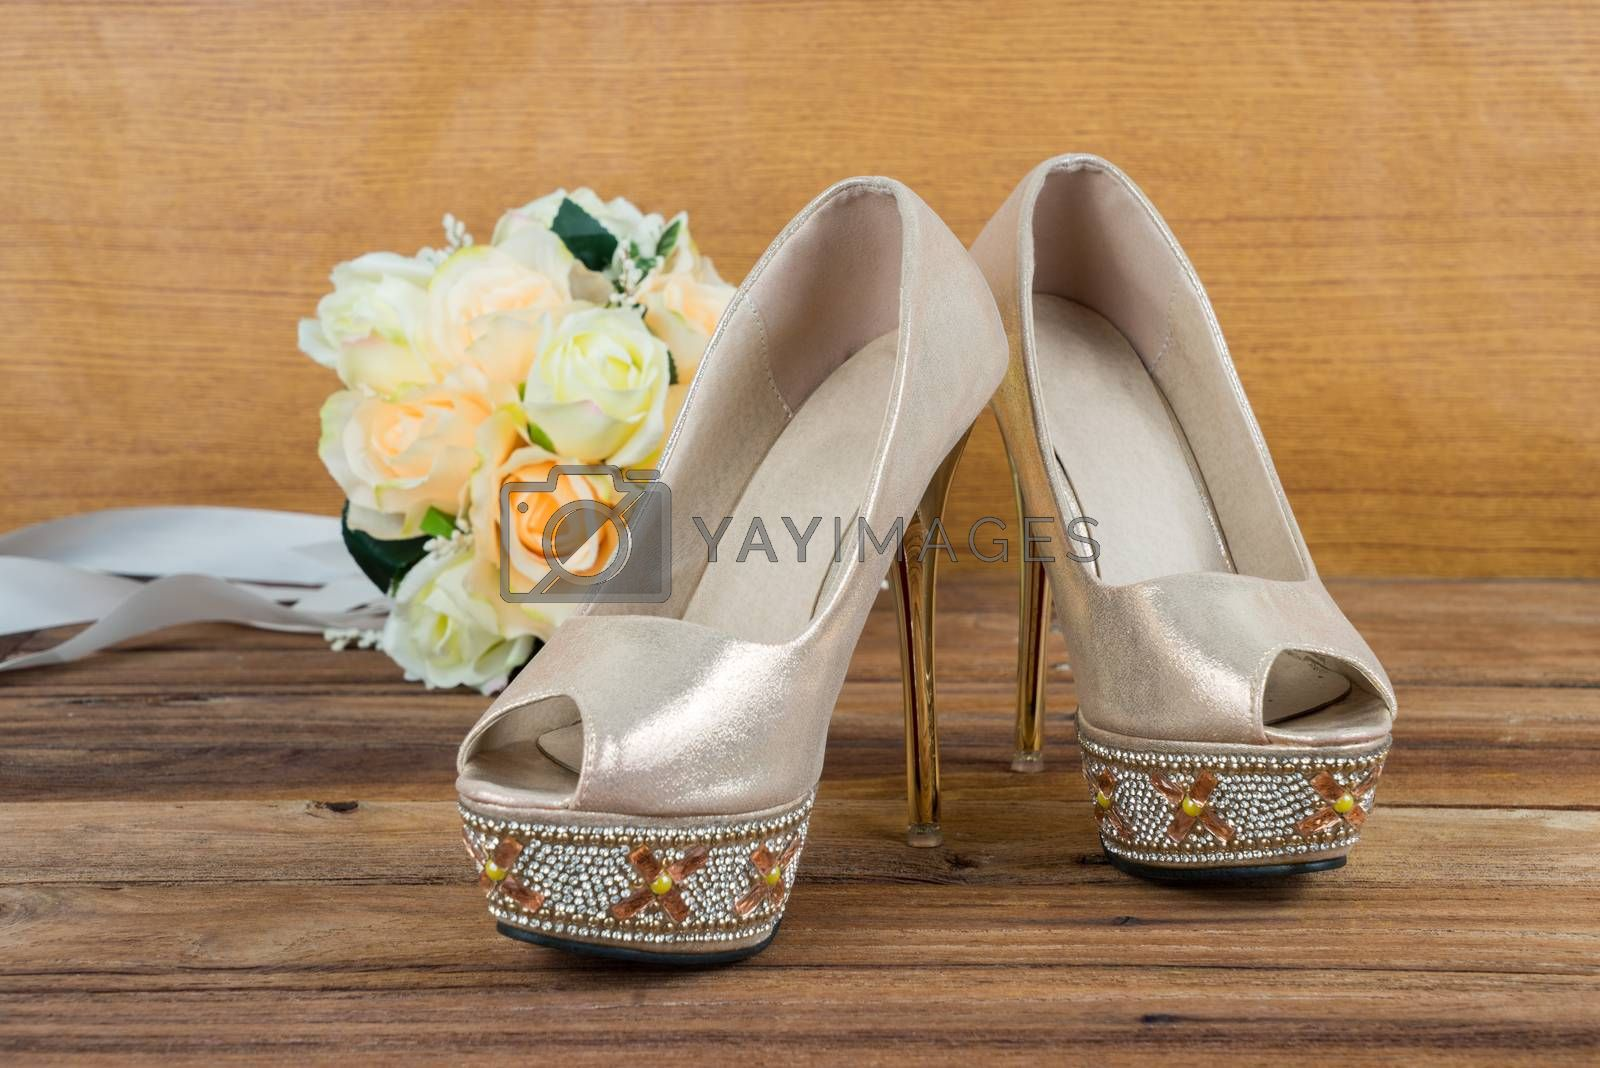 Royalty free image of Wedding bouquet with bride's shoes on wood background by iamway